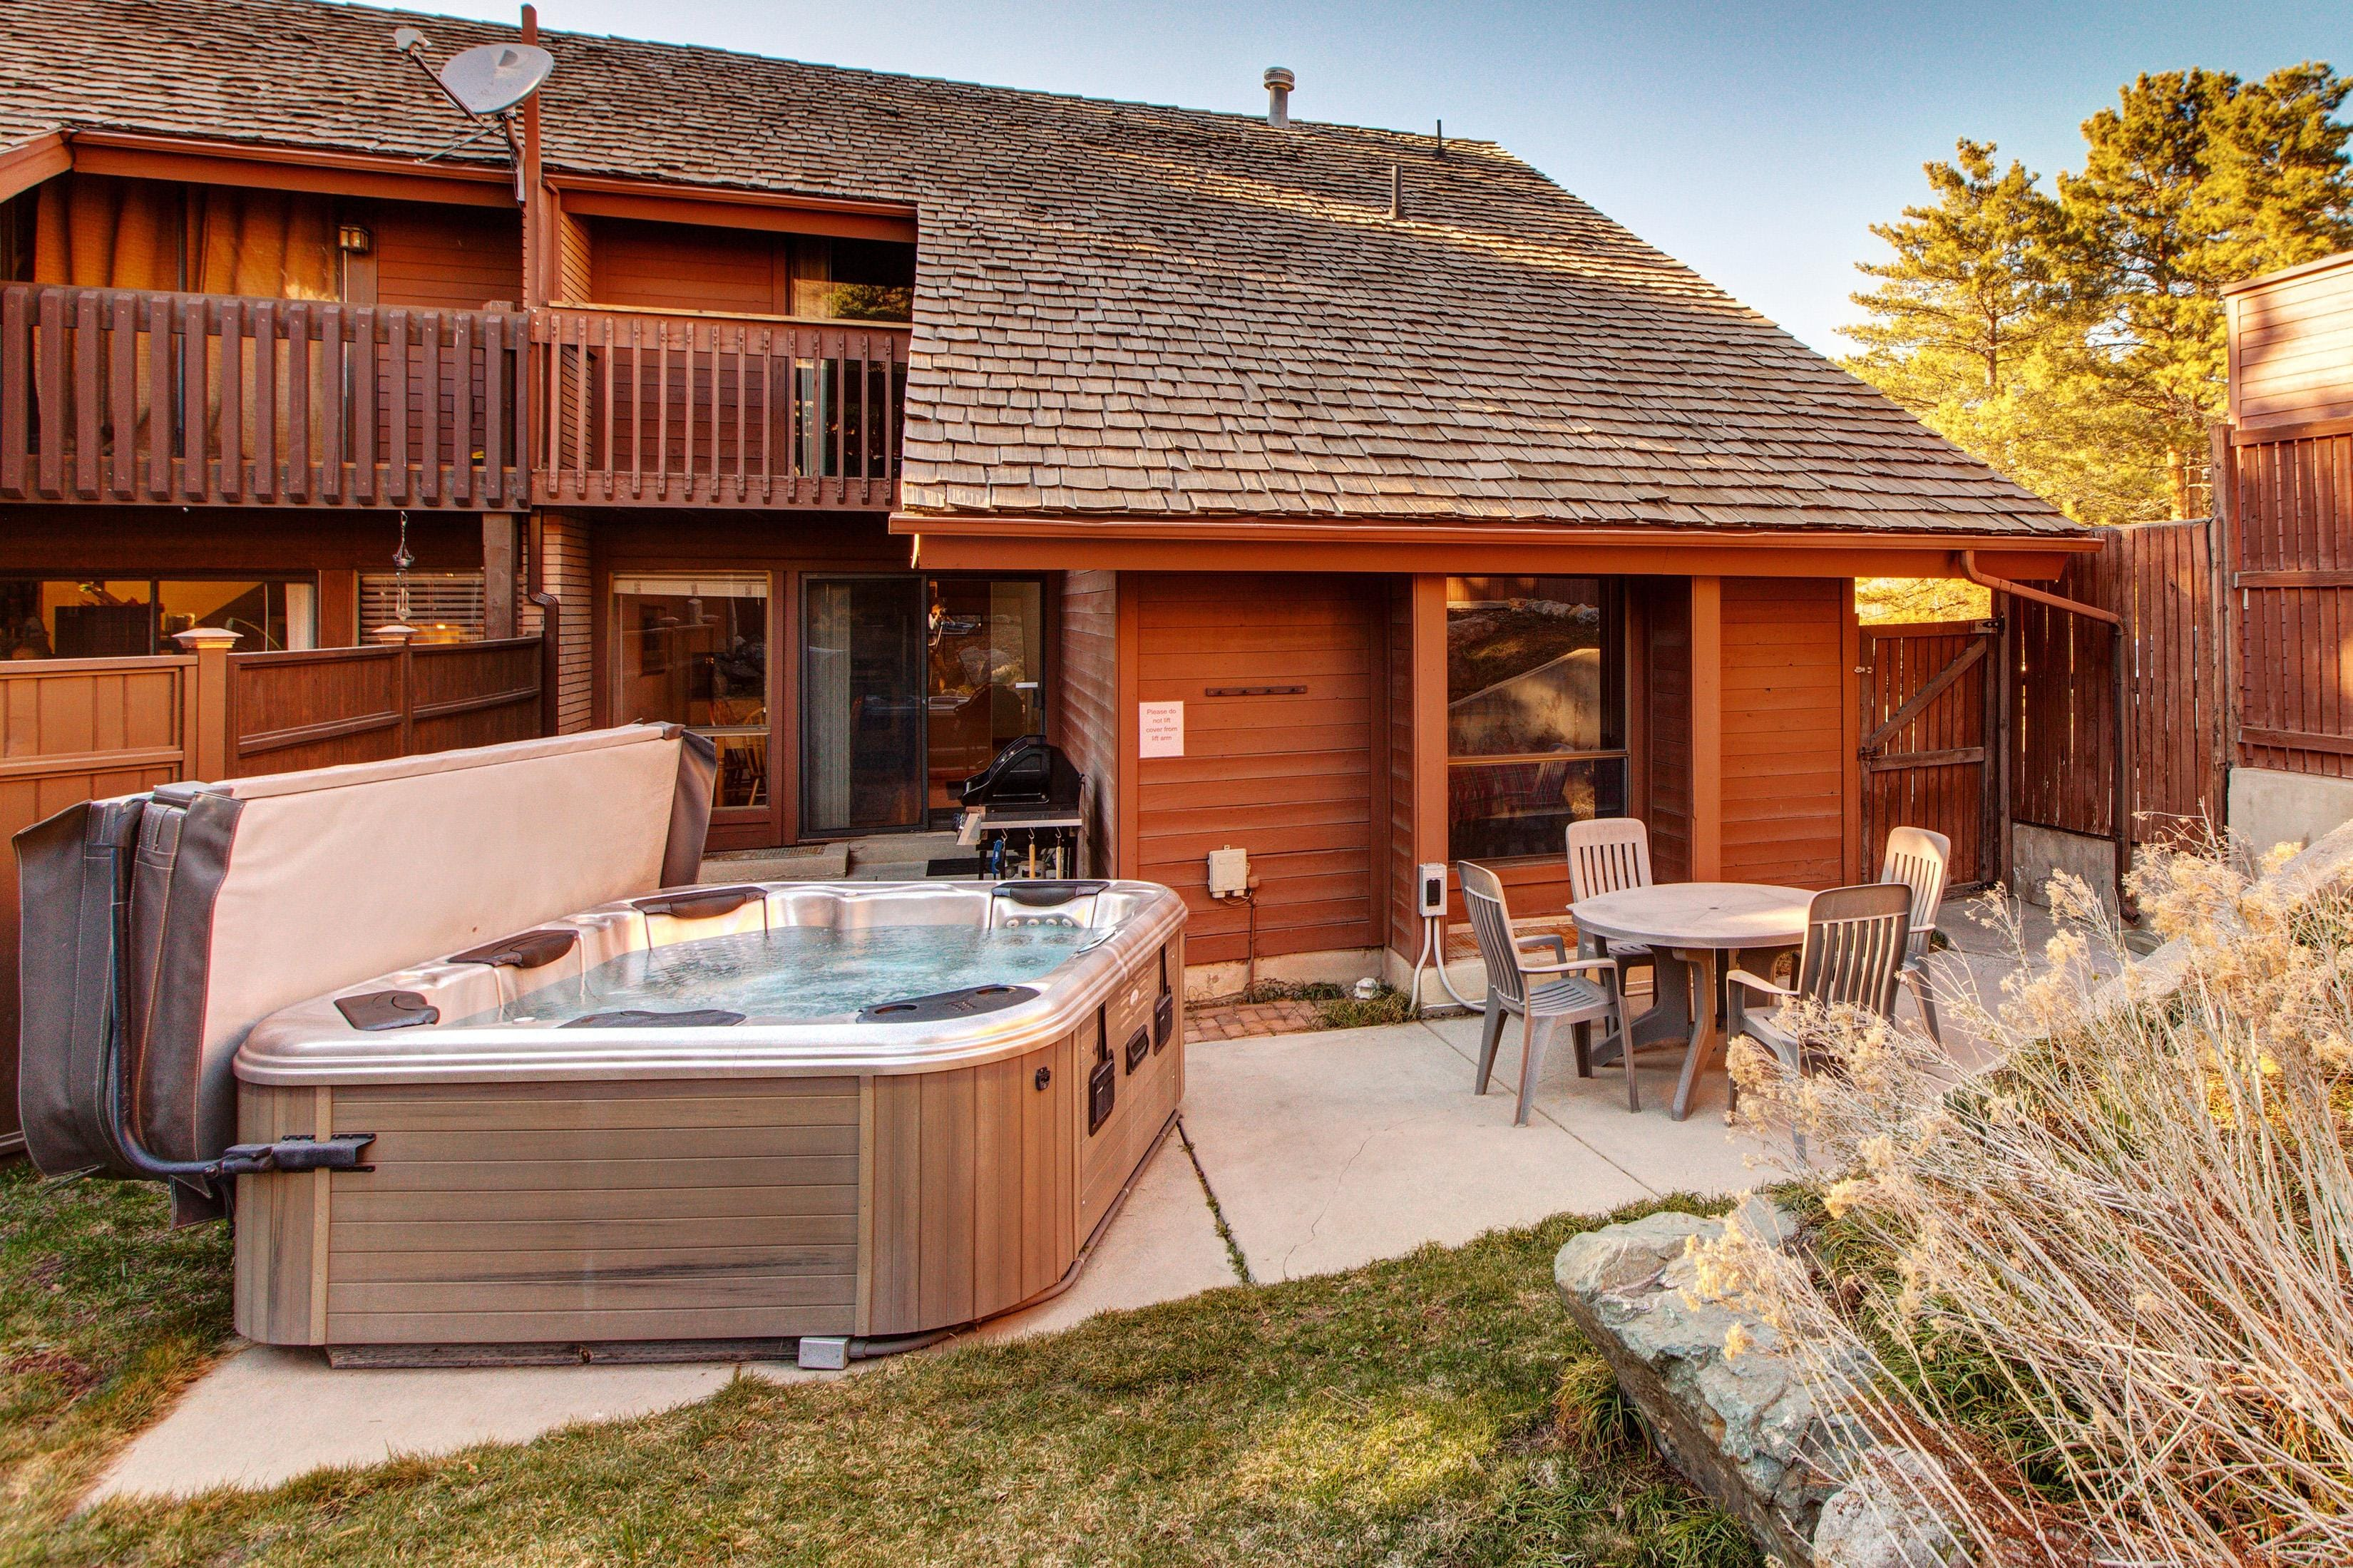 A private backyard includes a hot tub and a table with seating for 4.